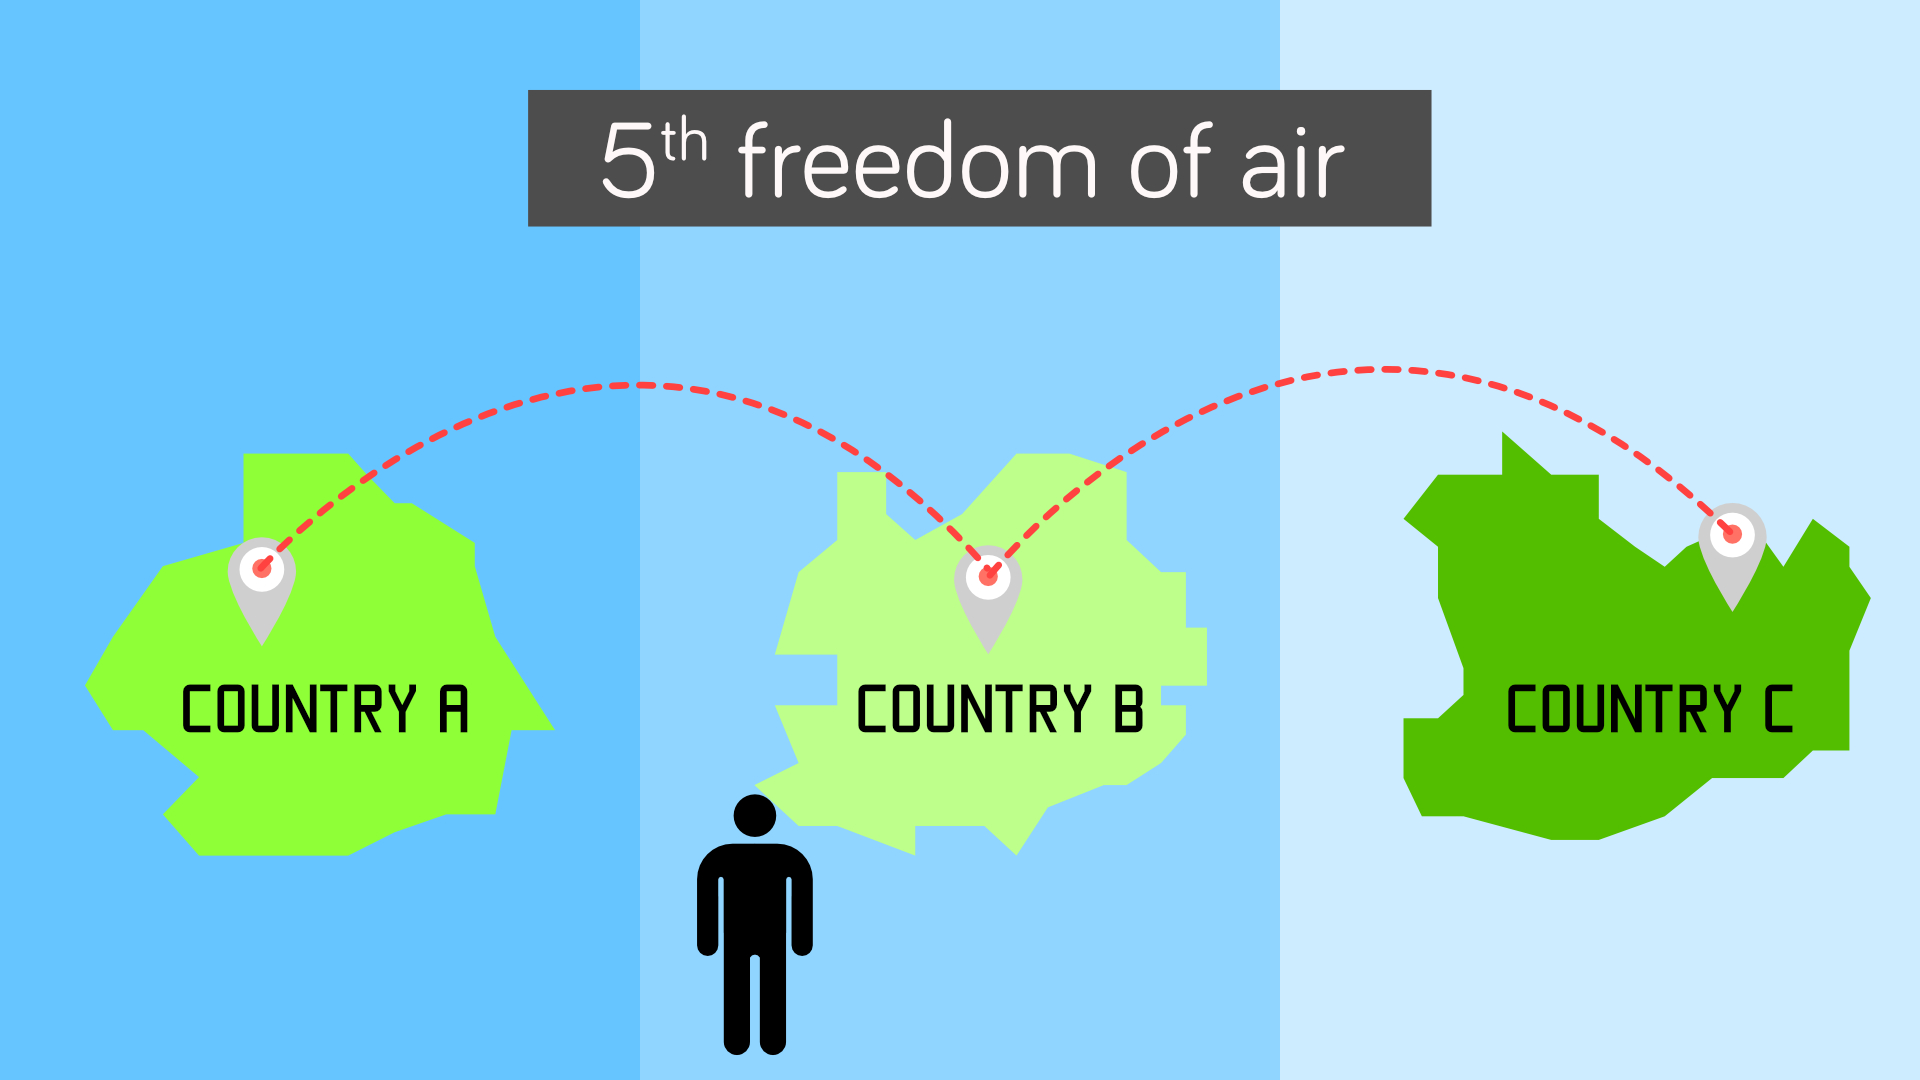 Fifth freedom allows airline to embark or disembark passenger in one's territory